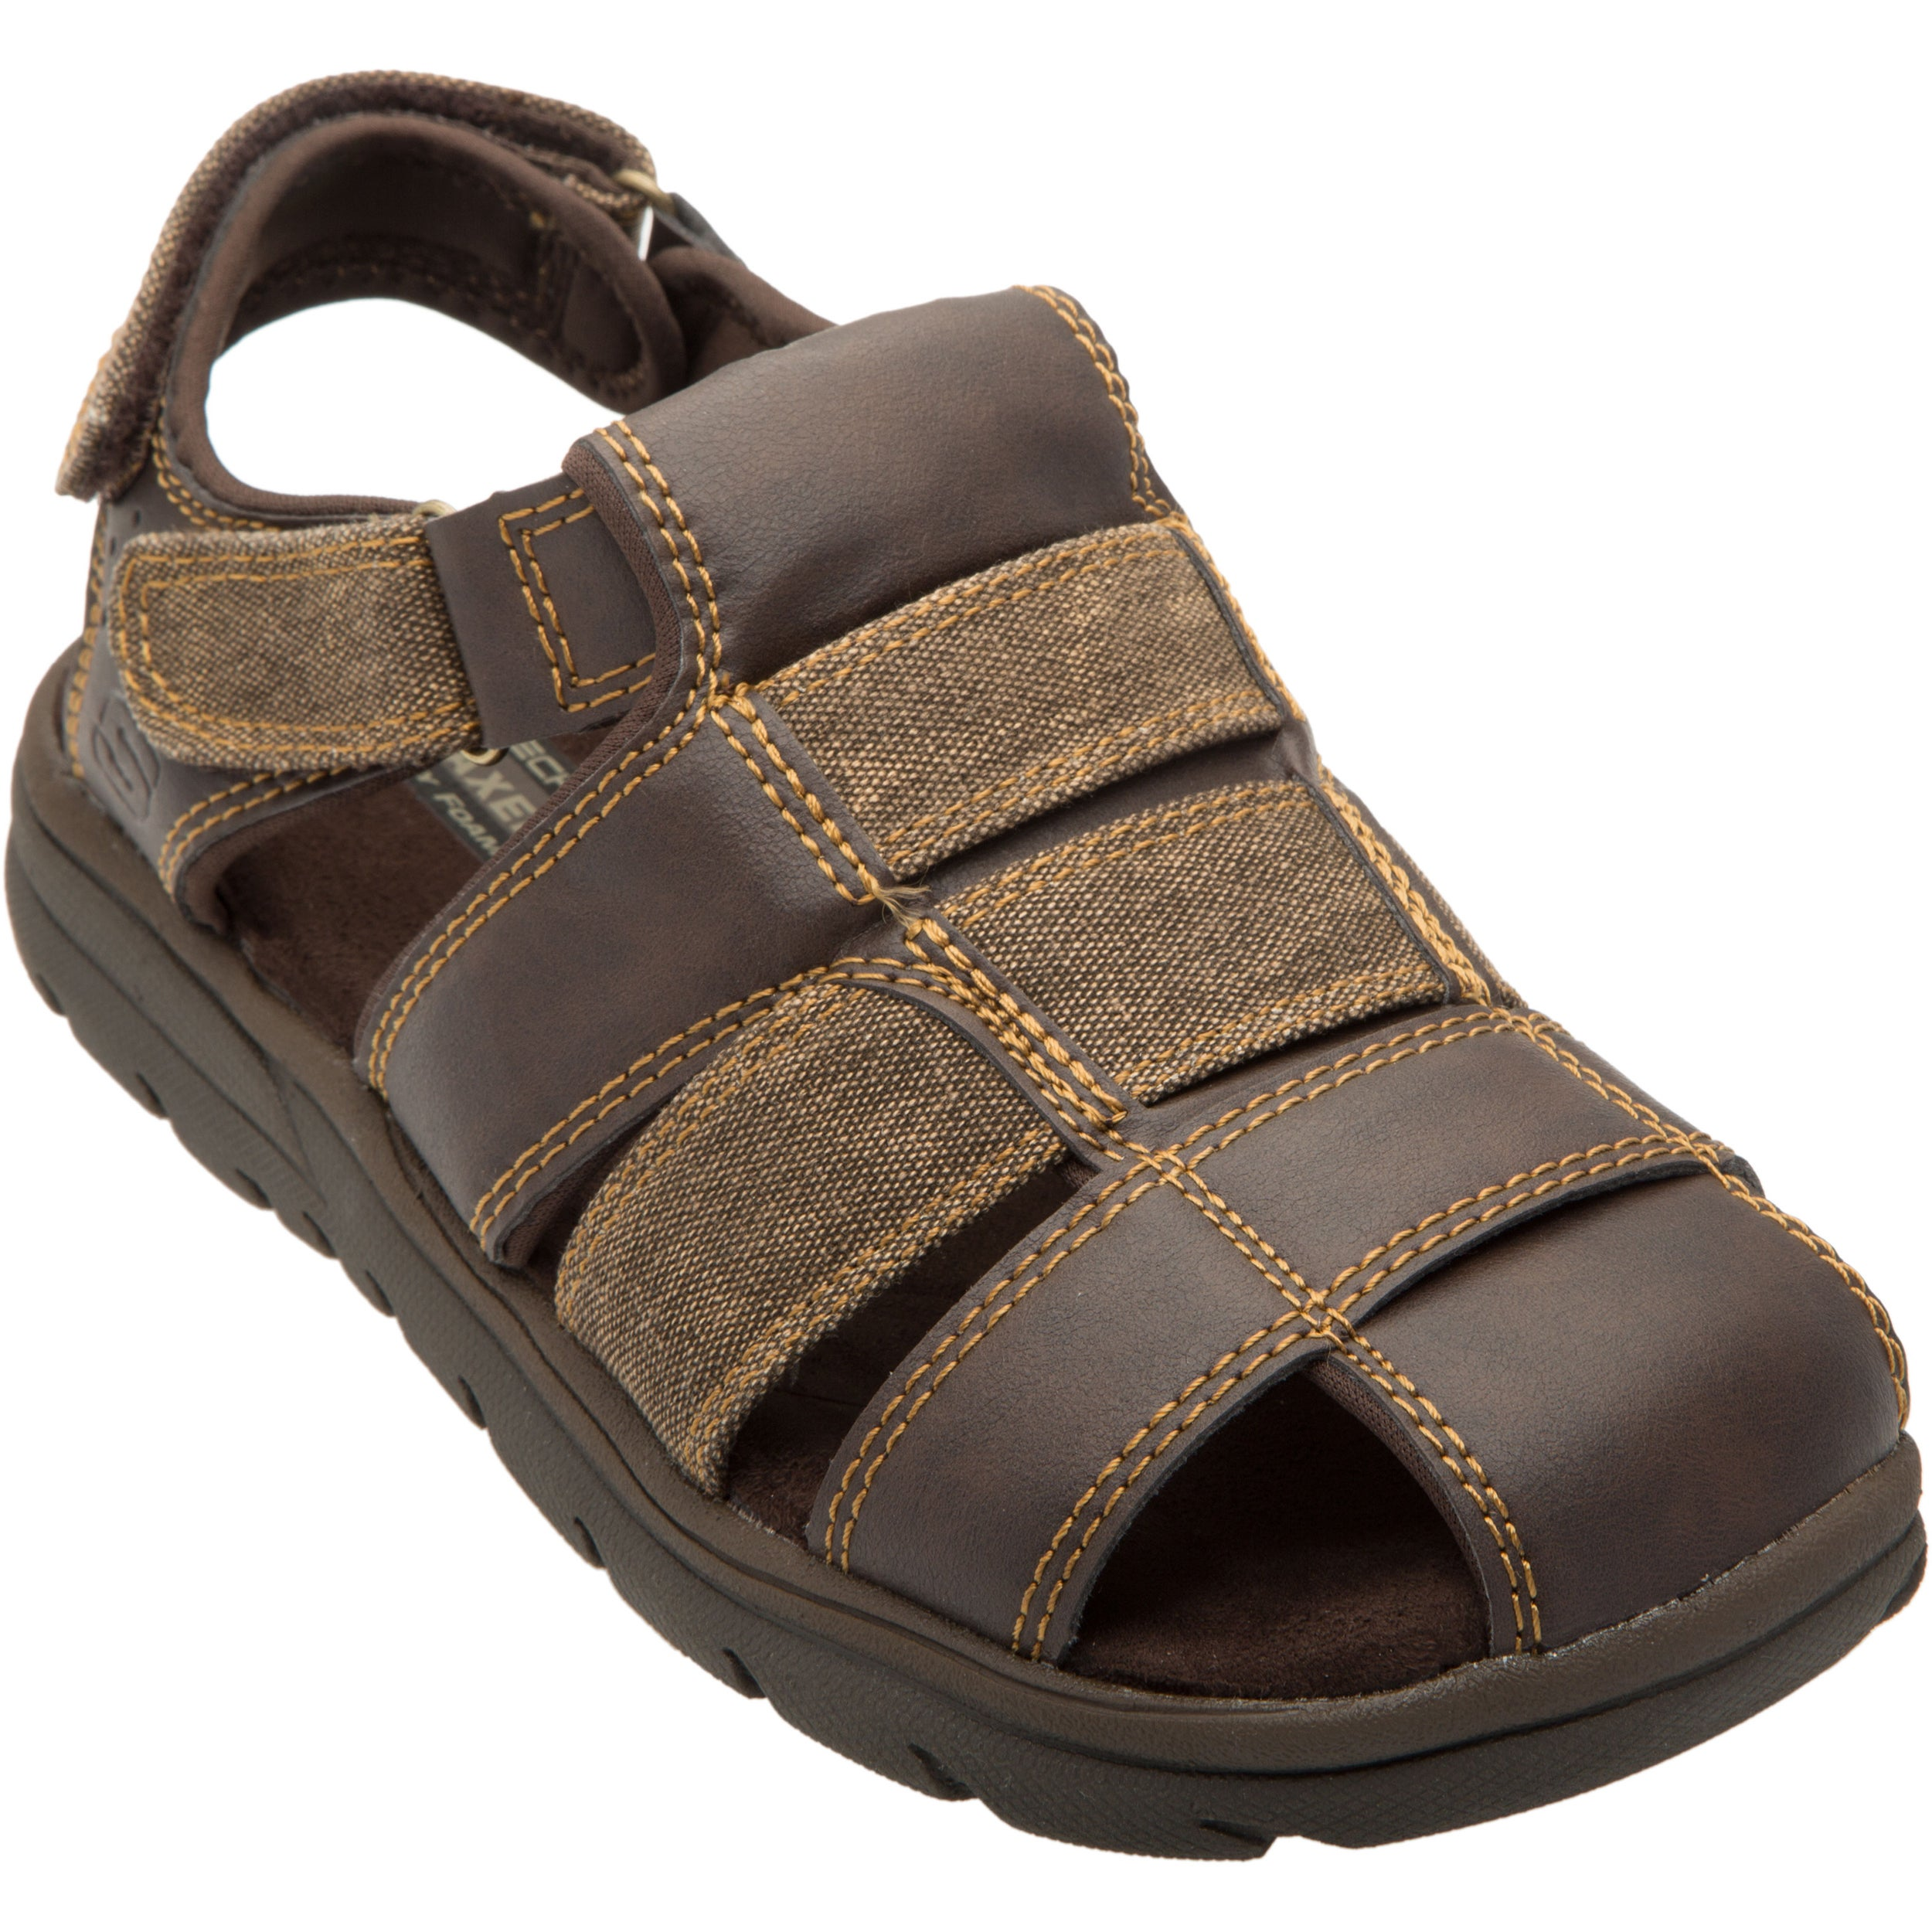 Skechers USA Relaxed Fit 360 Memory